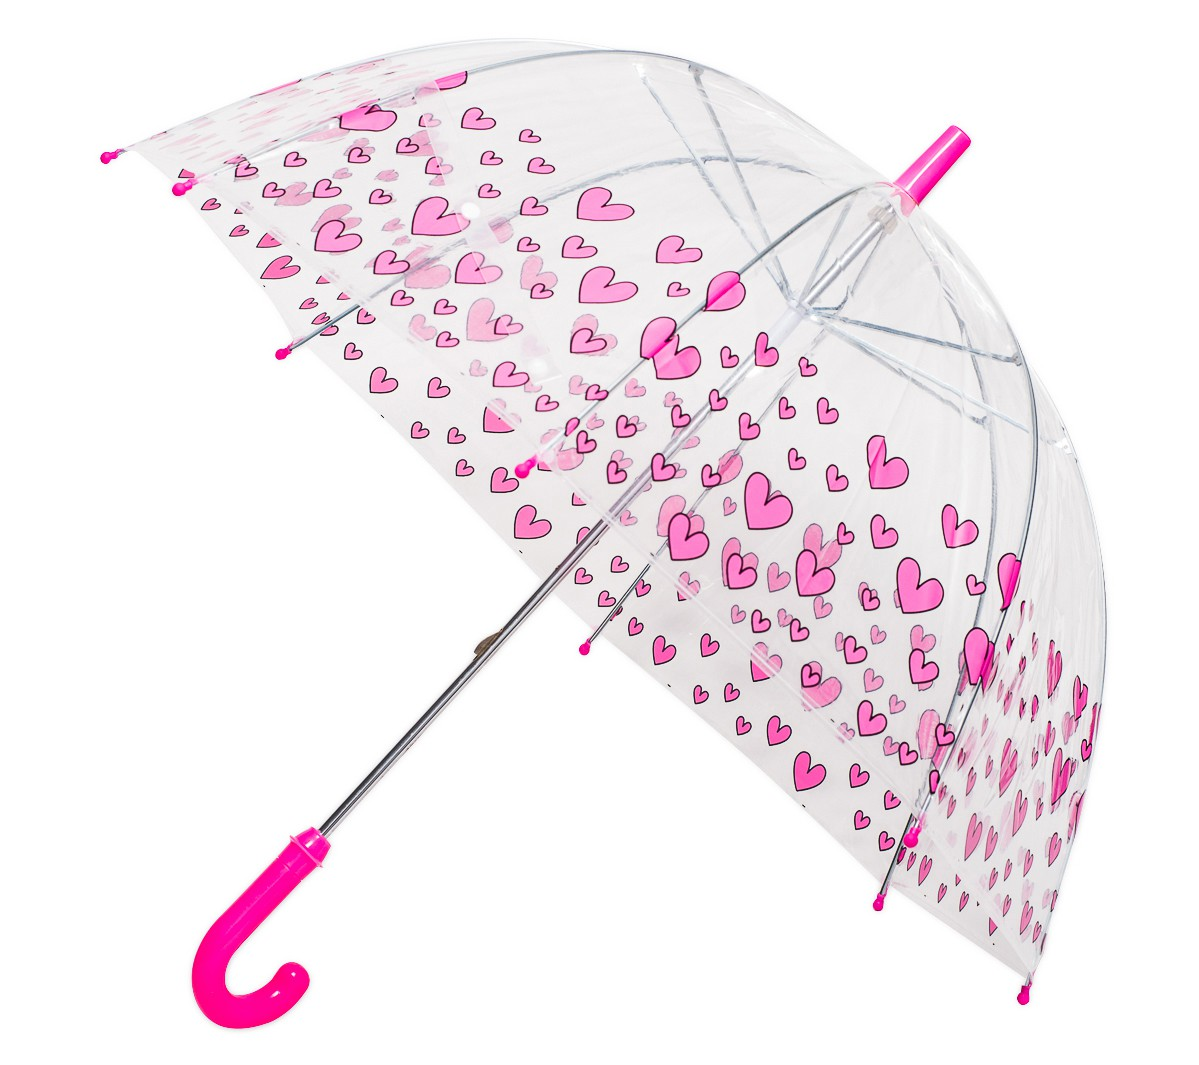 parapluie transparent fille